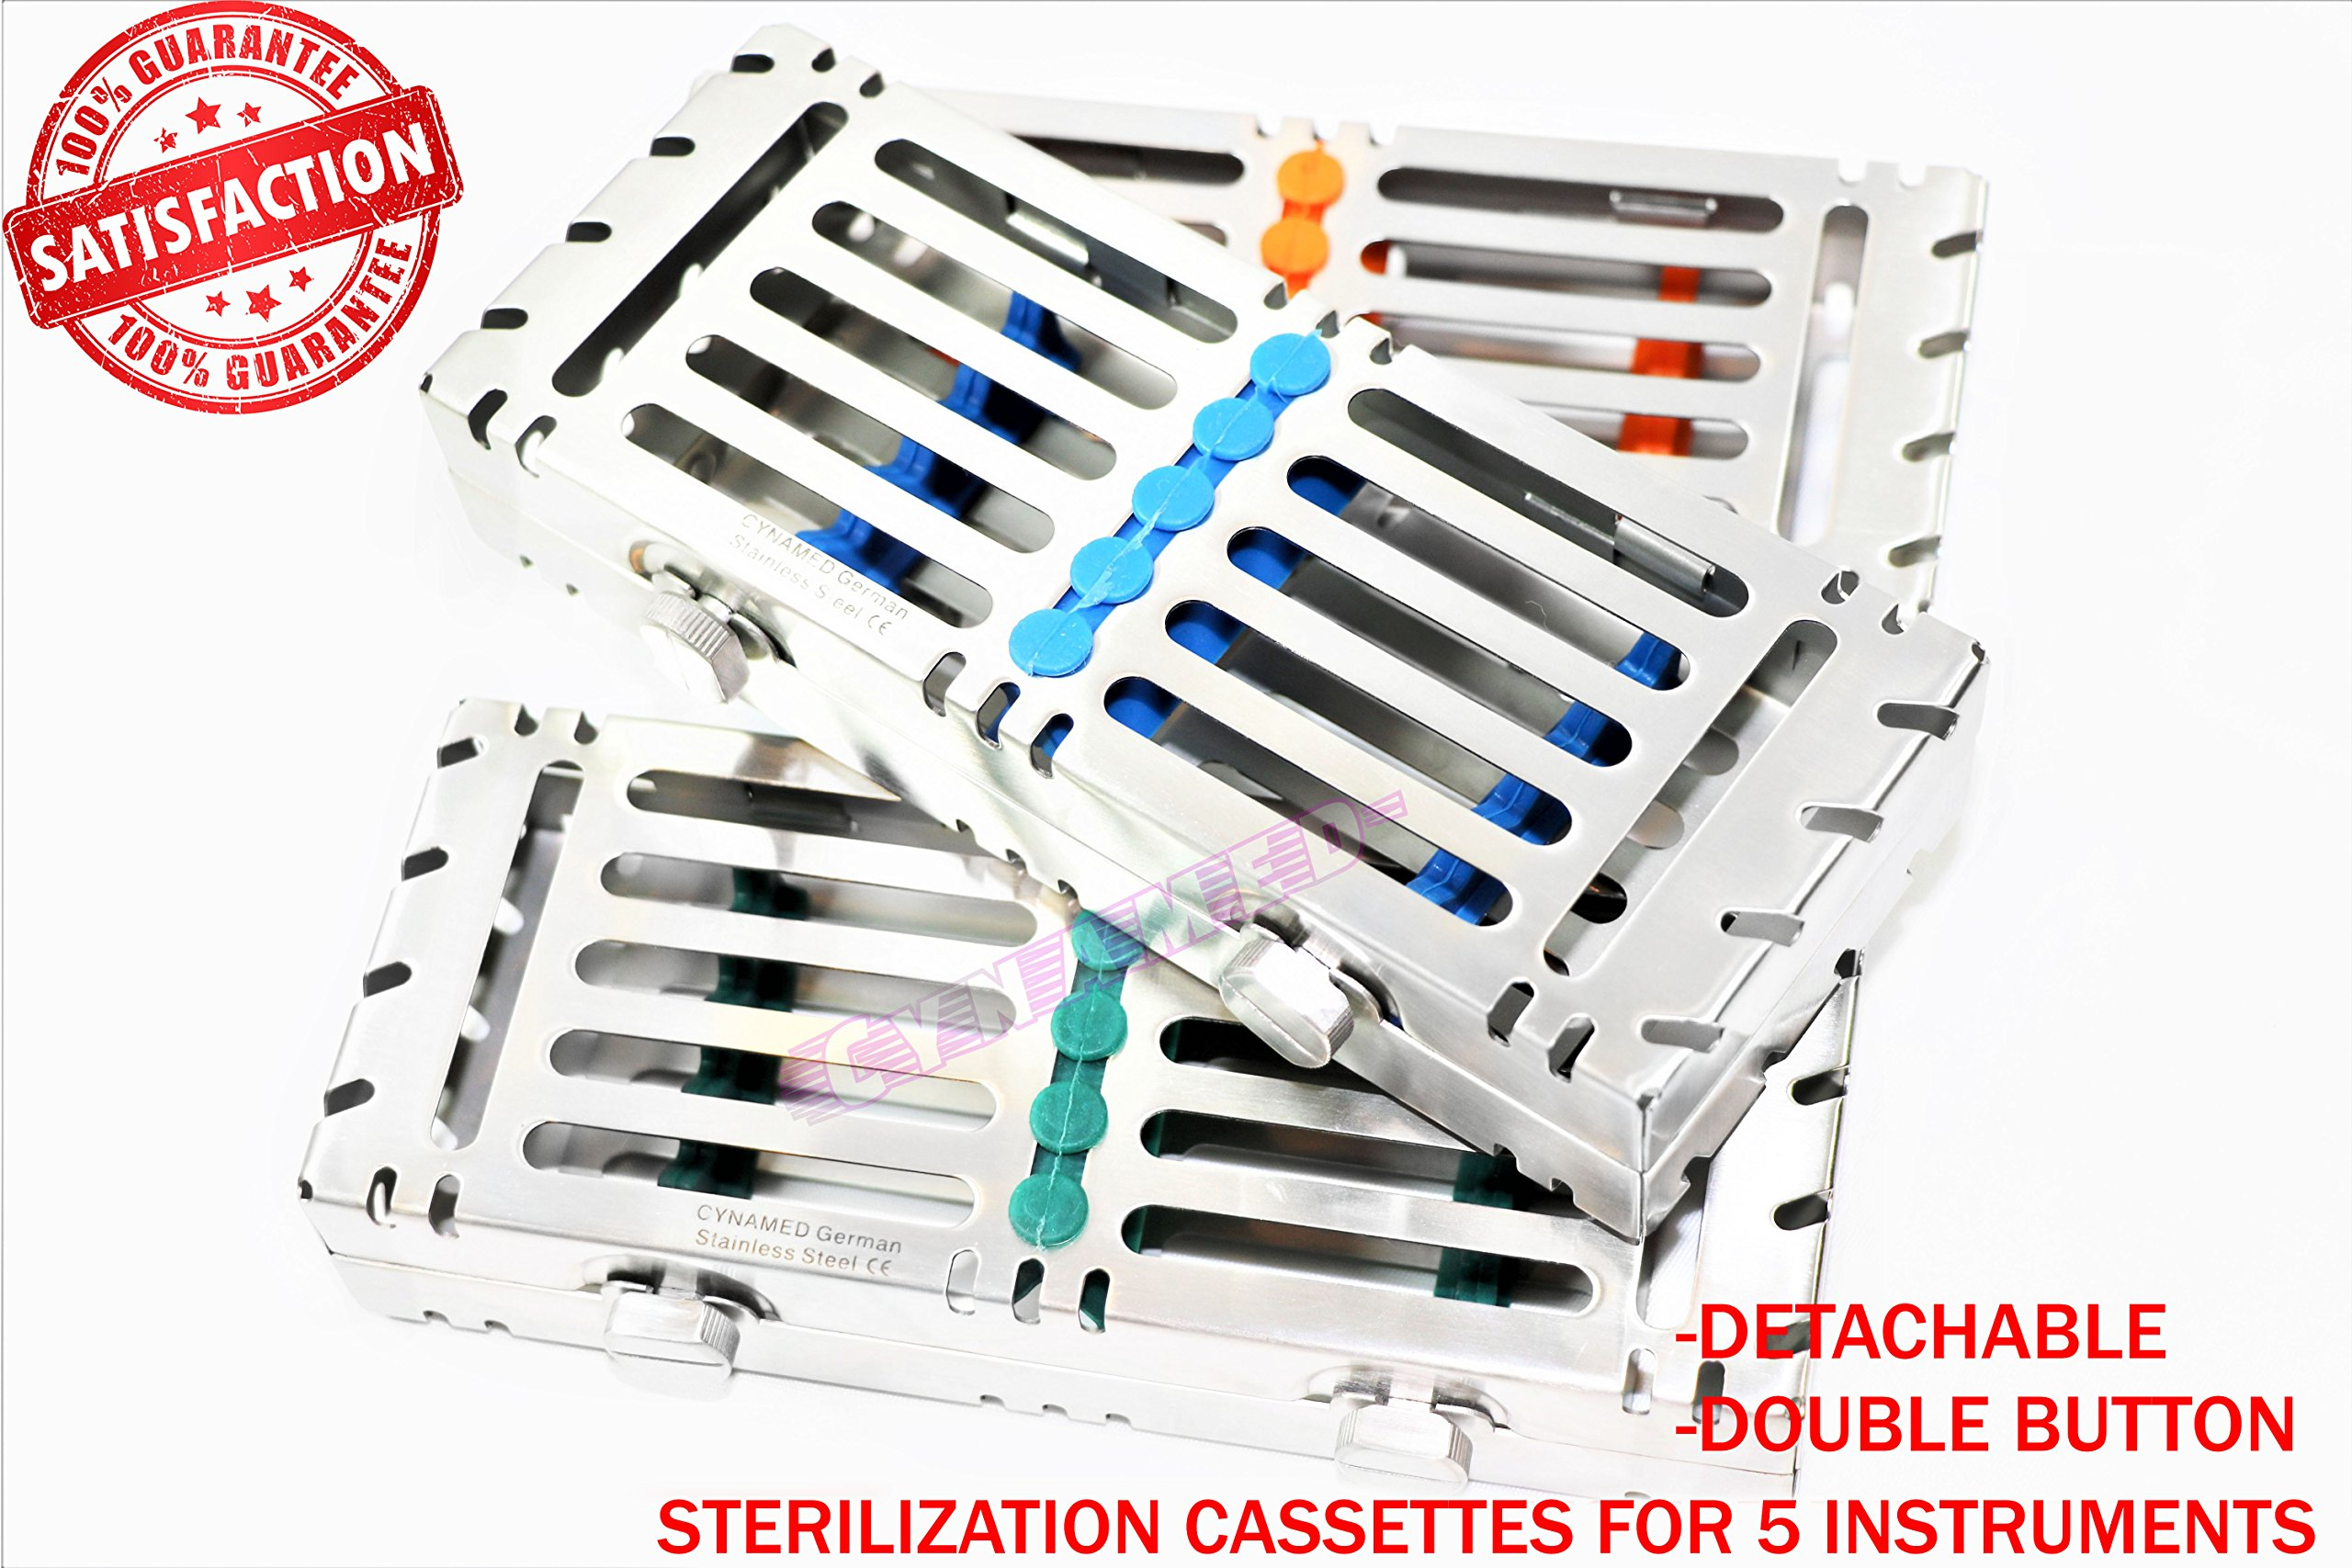 German AUTOCLAVABLE Detachable Sterilization Tray for 5 Instruments W/Double Buttons CYNAMED